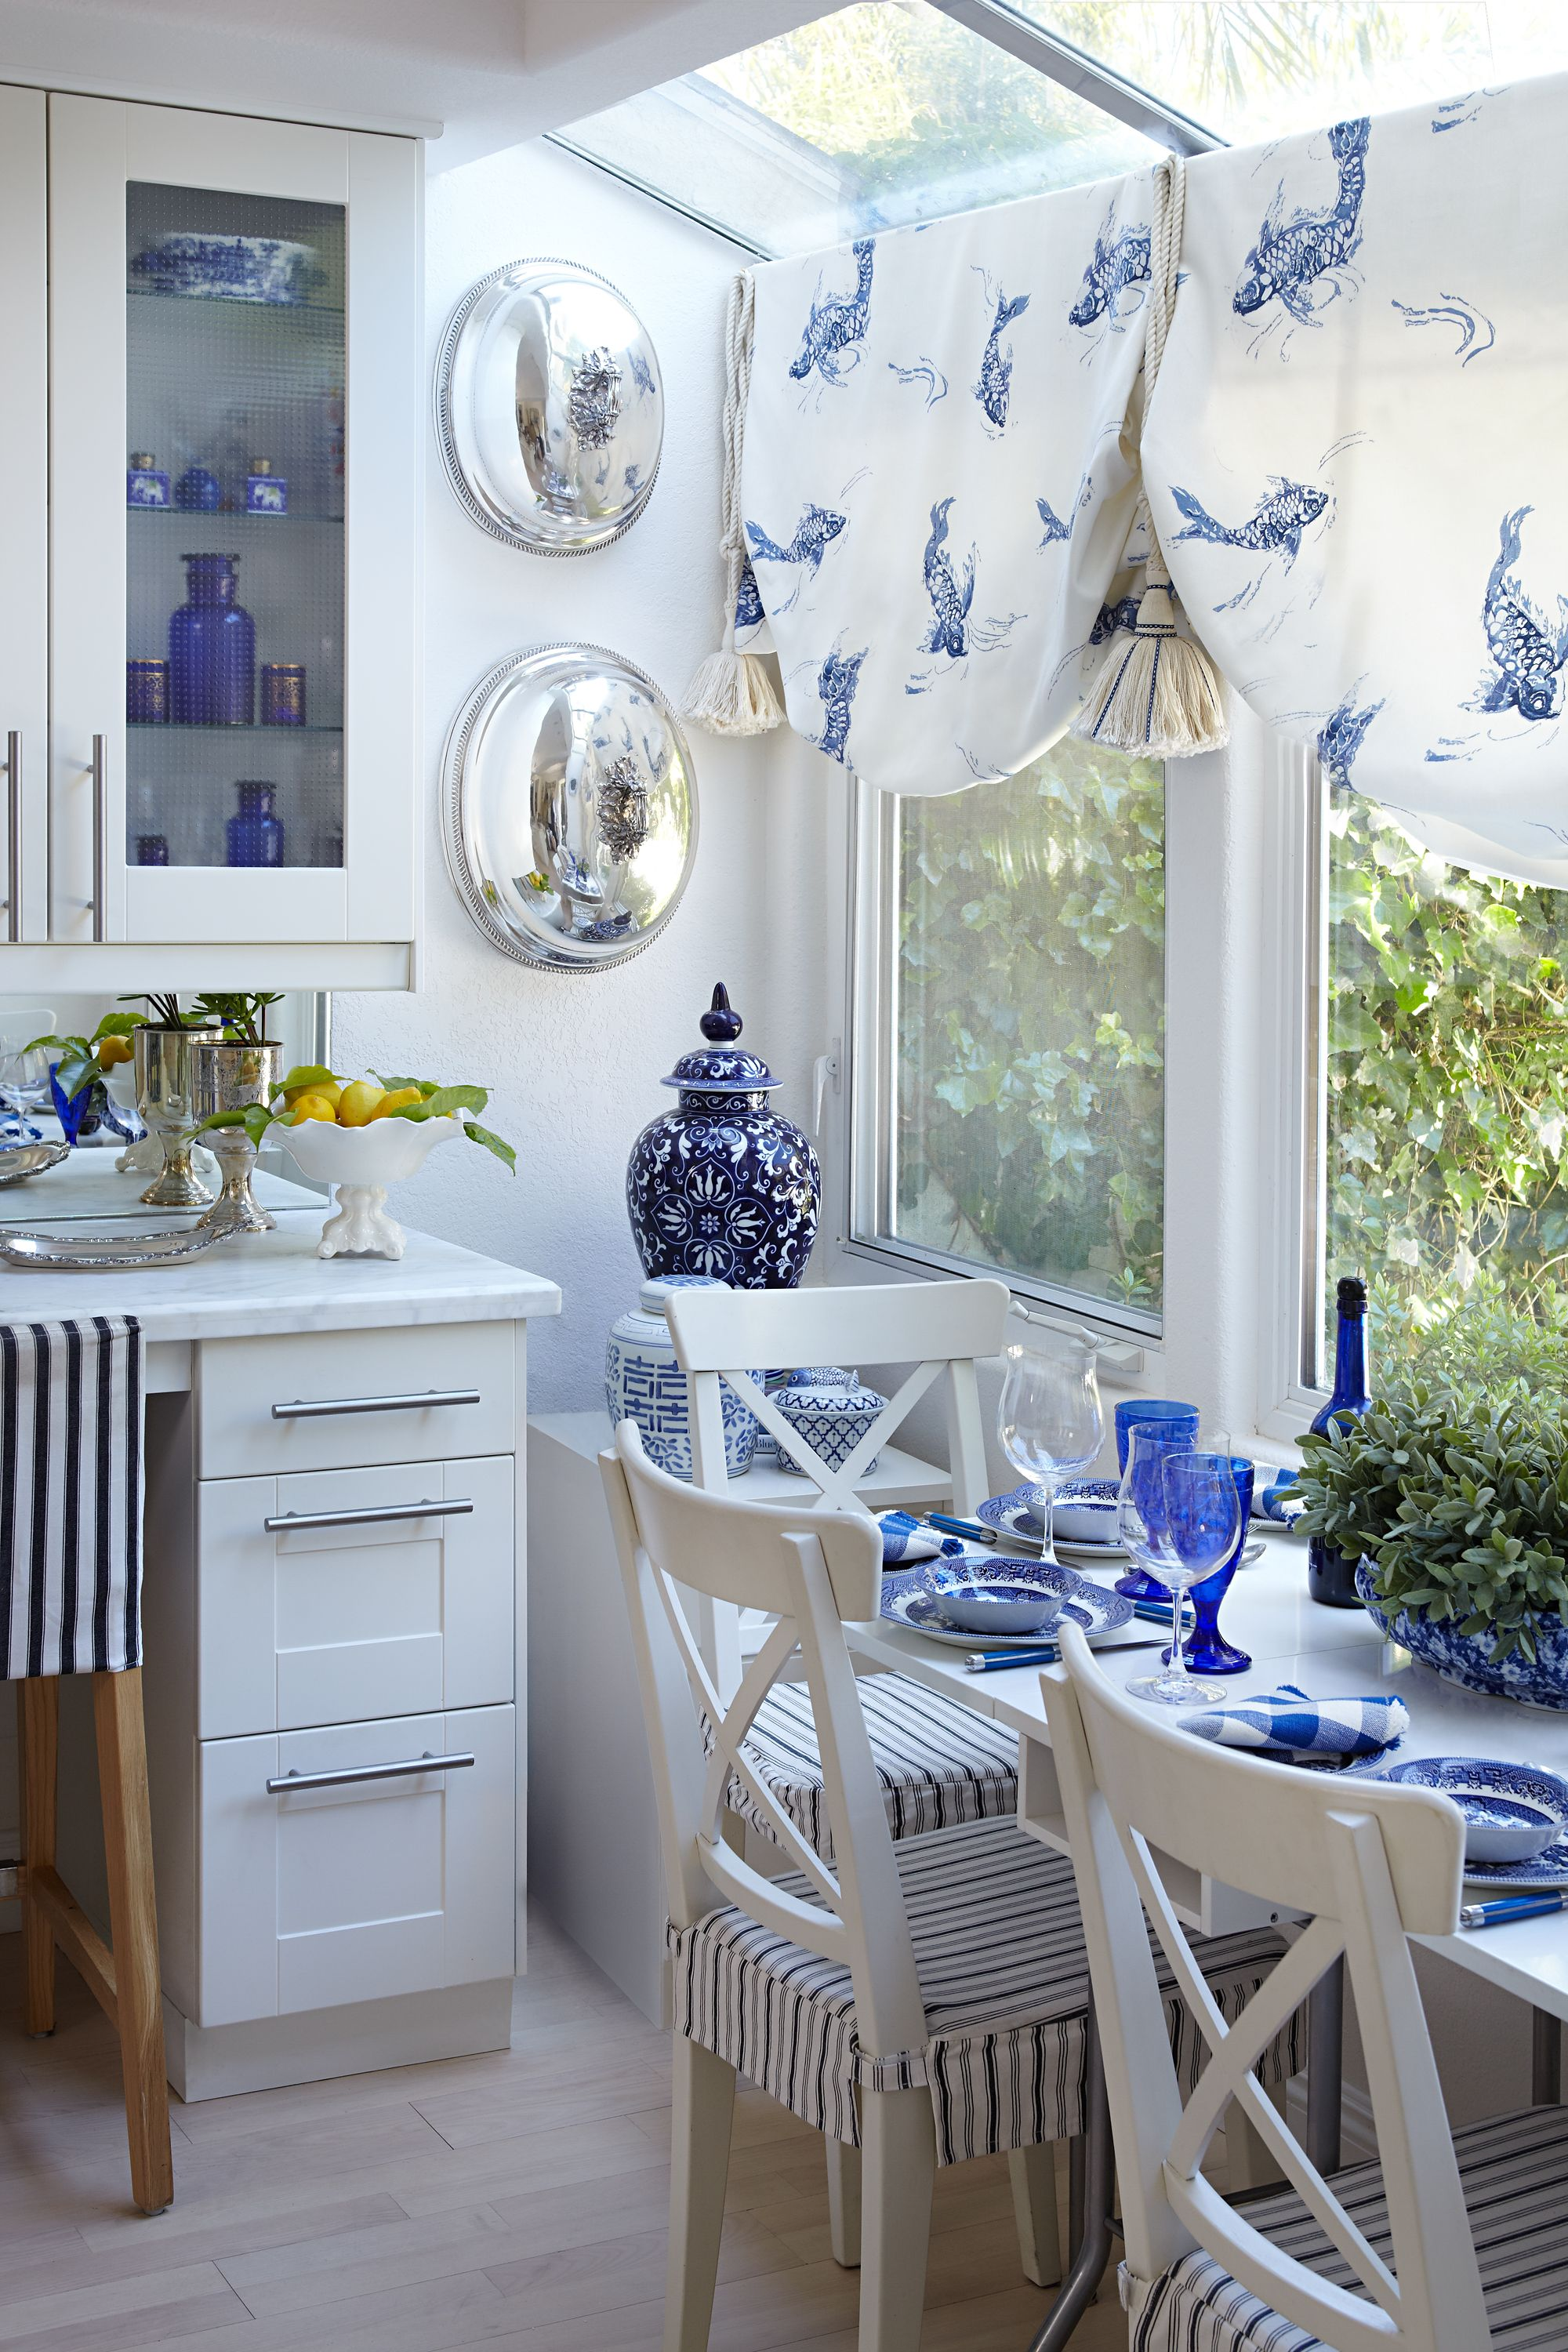 Kitchen nook window treatments  blue and white kitchen  country homes and cottages  pinterest